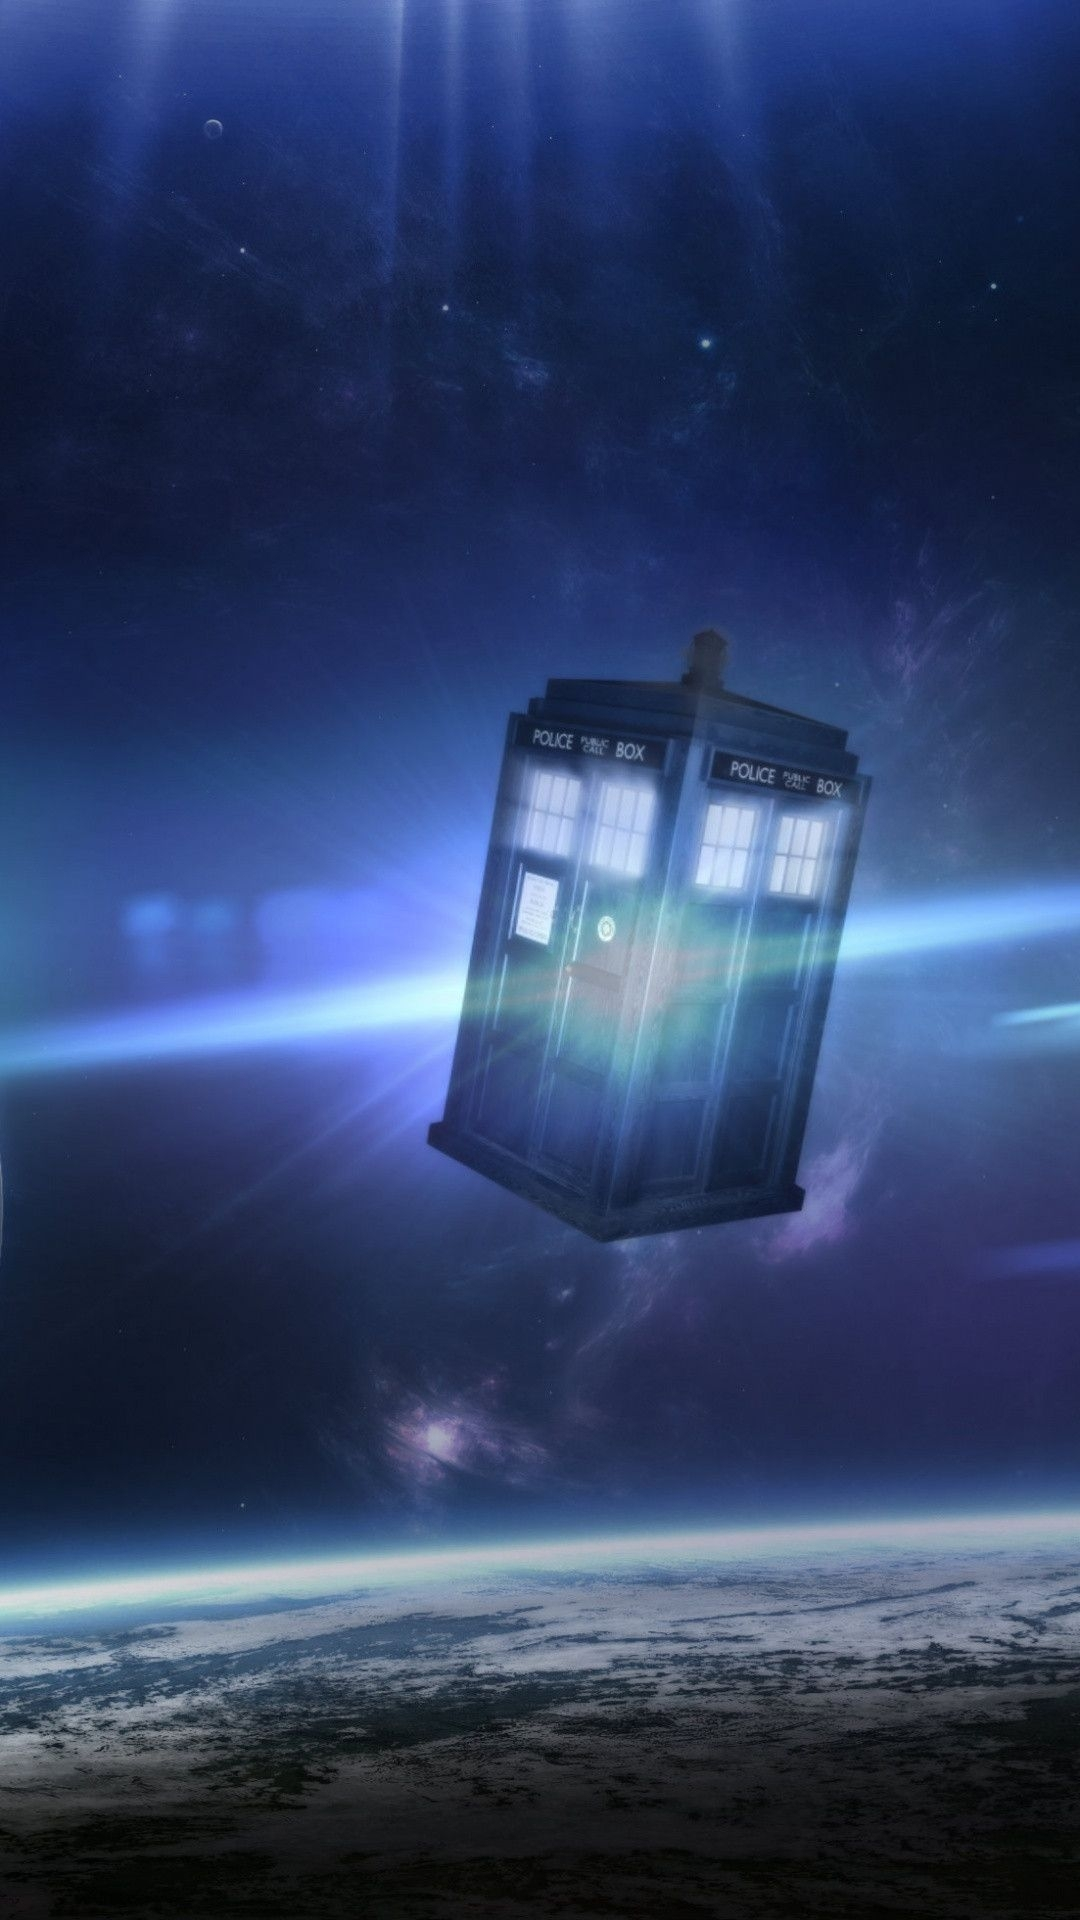 tardis live wallpaper | hd wallpapers | pinterest | tardis, live